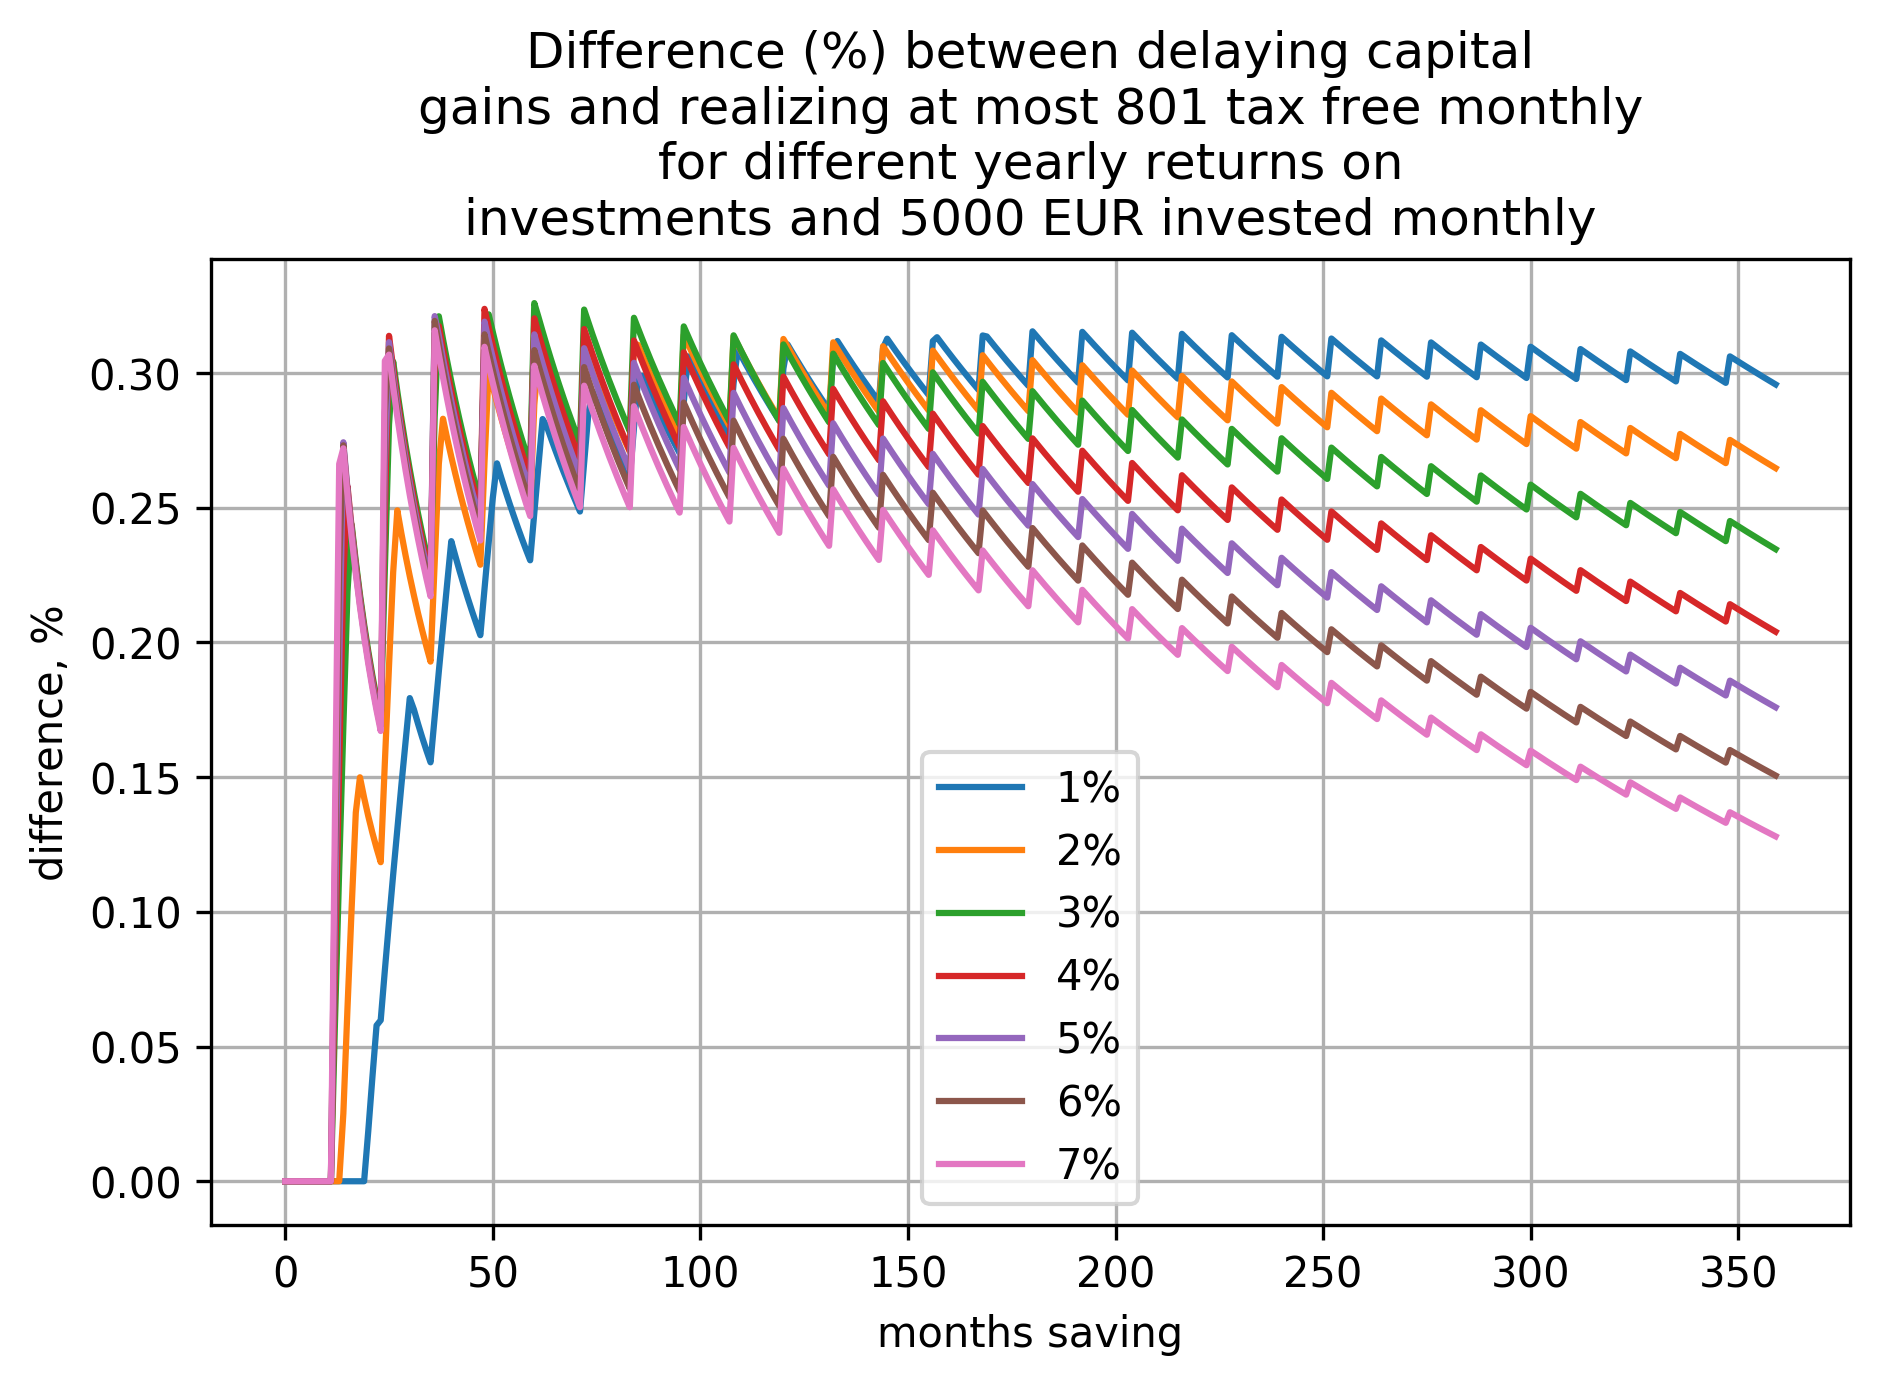 a plot showing how difference (in percents) between the two cases (delaying capital gains and realizing at most 801€ tax free yearly) depends on time saving and yearly return on investment when investing 5000€ per month